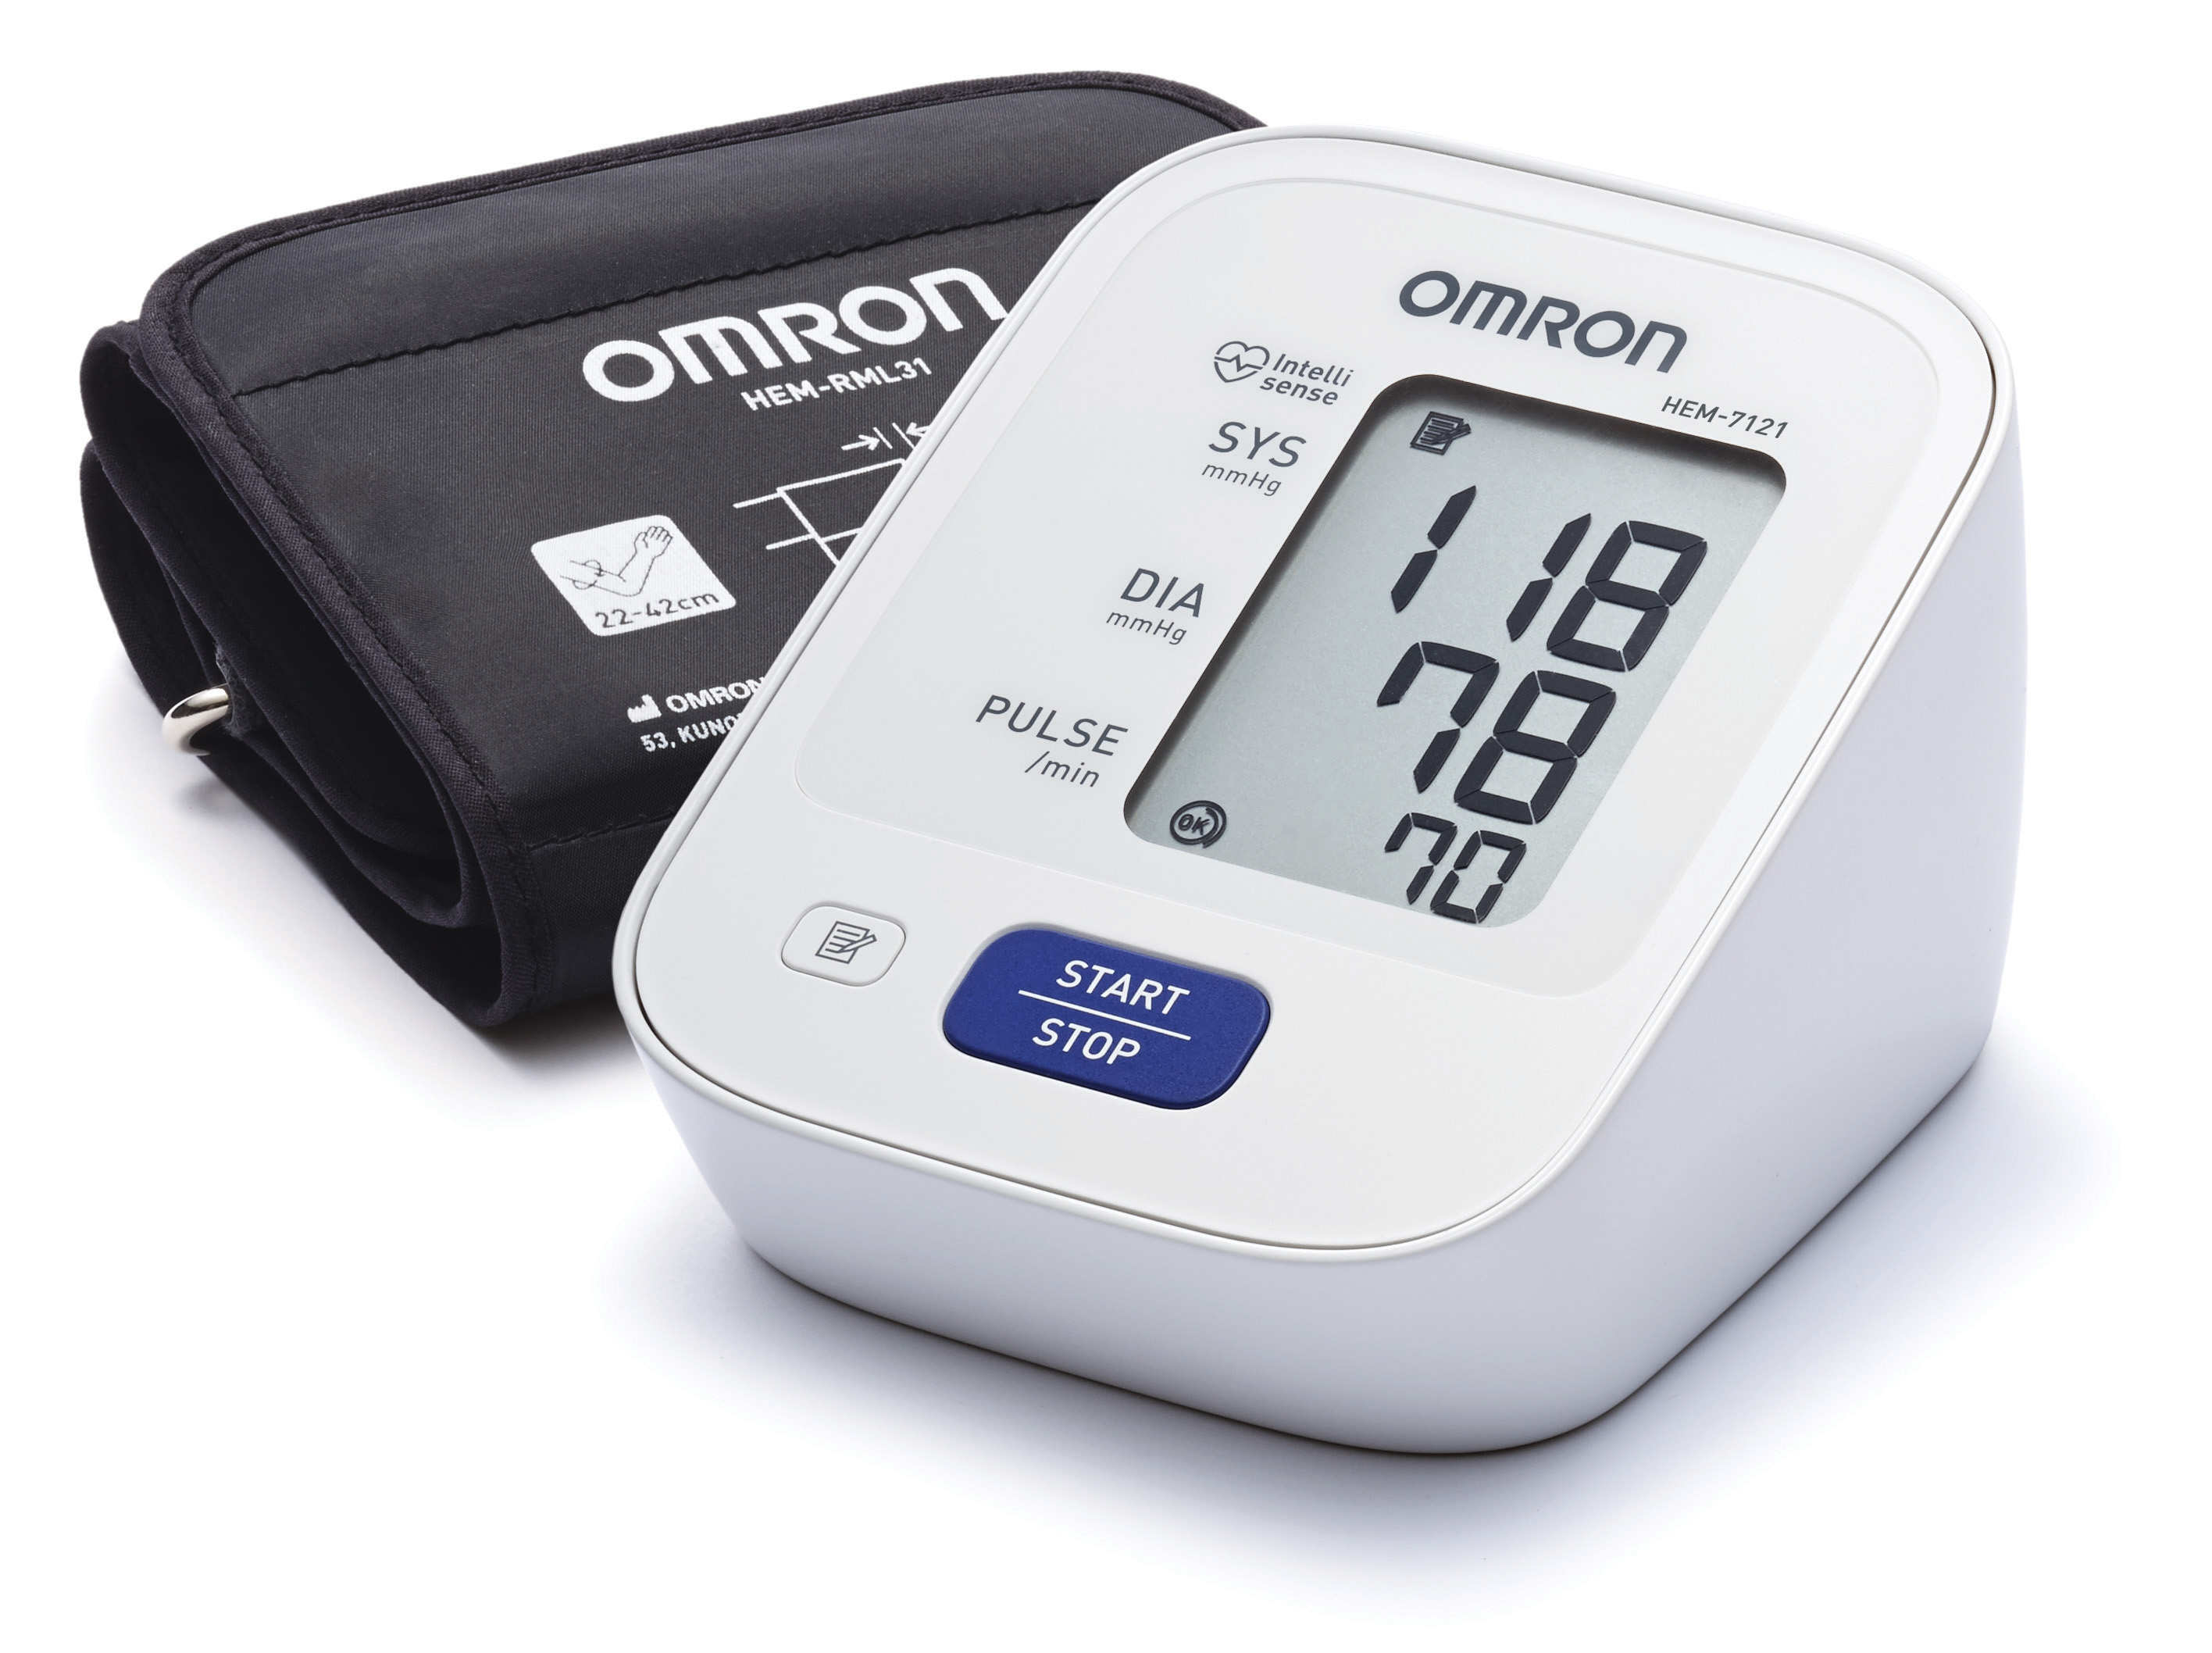 Buy Omron 5 Years Local Warranty Hem 7121 7120 7310 6121 Made In